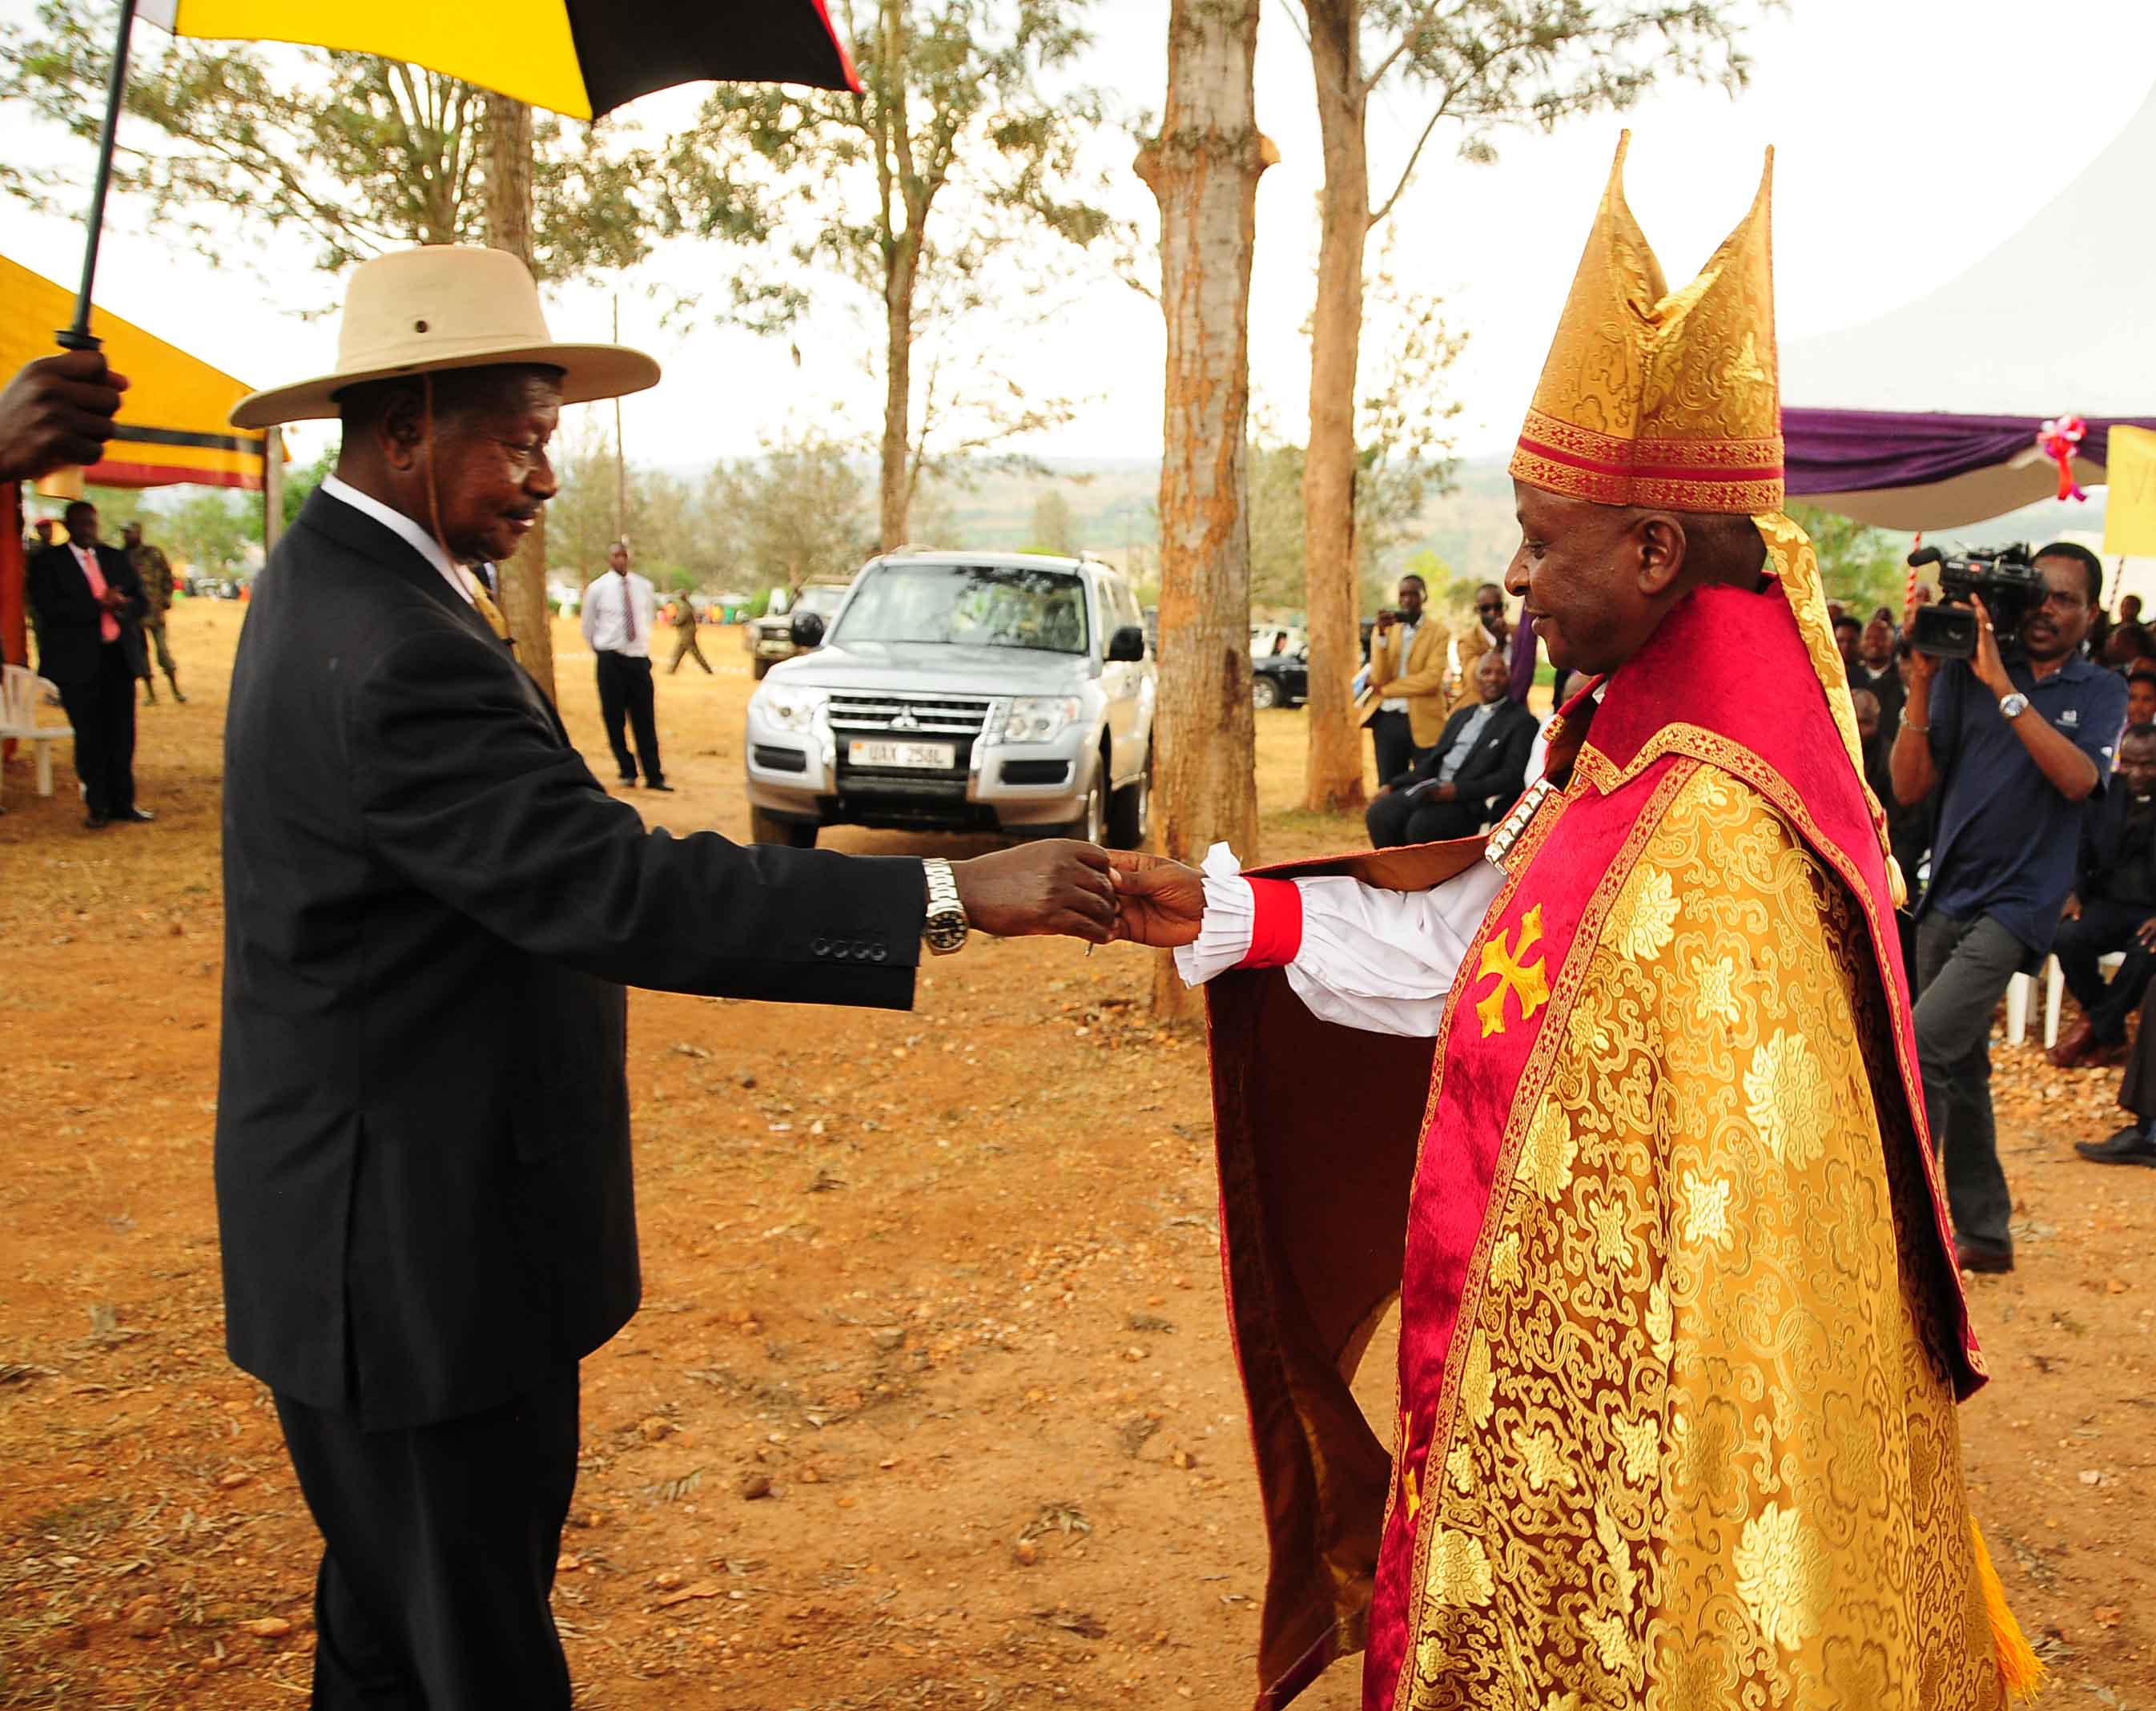 President Yoweri Museveni handing over a key to the brand new Mitsubishi Pajero to the newly concecrated Bishop of West Ankole Diocese, Stephen Namanya during the ceremony at St. Emmanuel Cathedral Rushere. Sunday August 1st 2015.